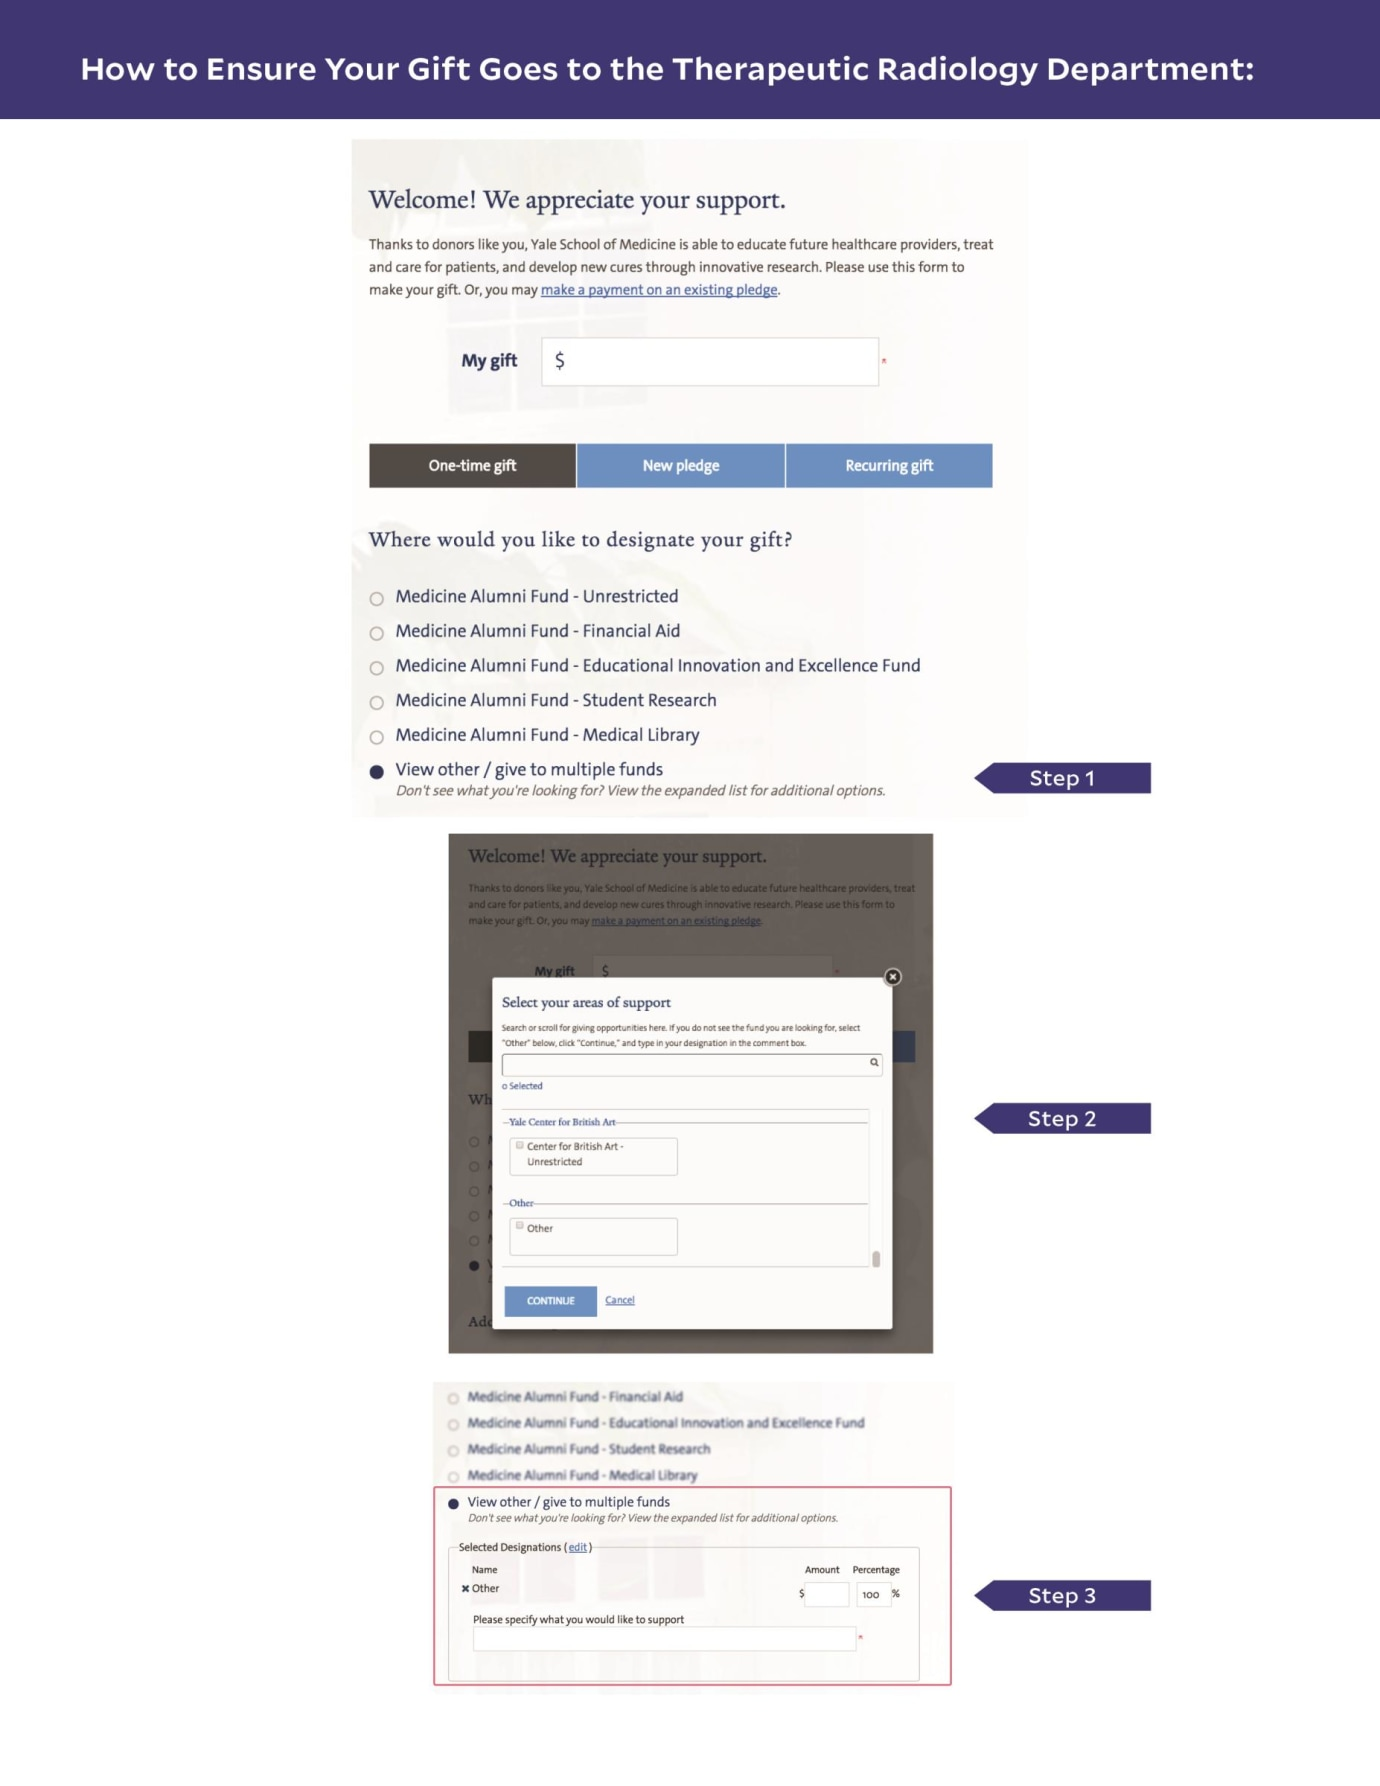 Screenshots of the Giving to Yale web pages to ensure your gift goes to Therapeutic Radiology.